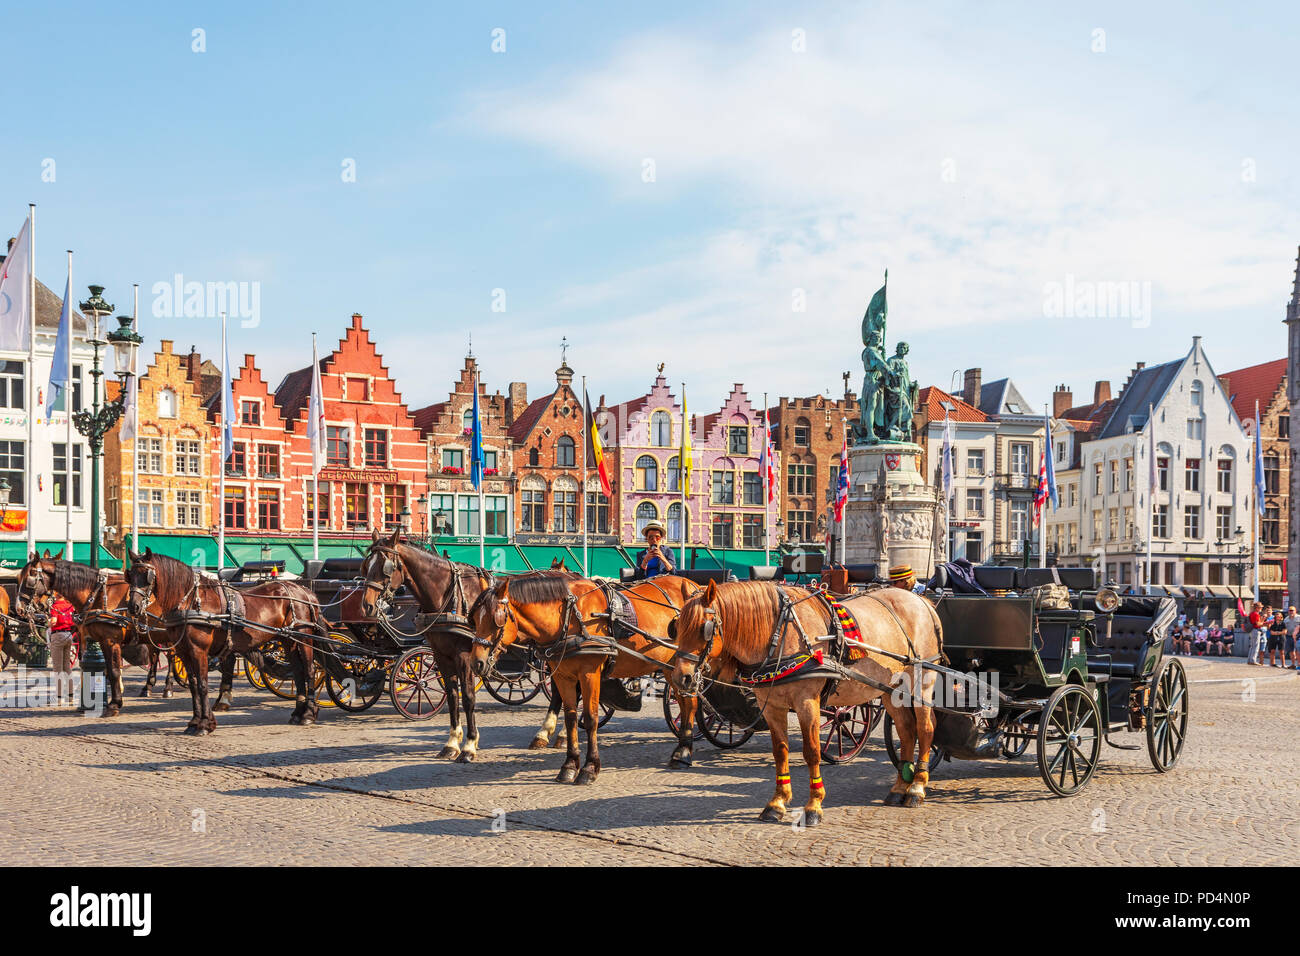 Horse and traps in Markt Square, Bruges used for taking tourists on a  city tour, Bruges, Belgium - Stock Image